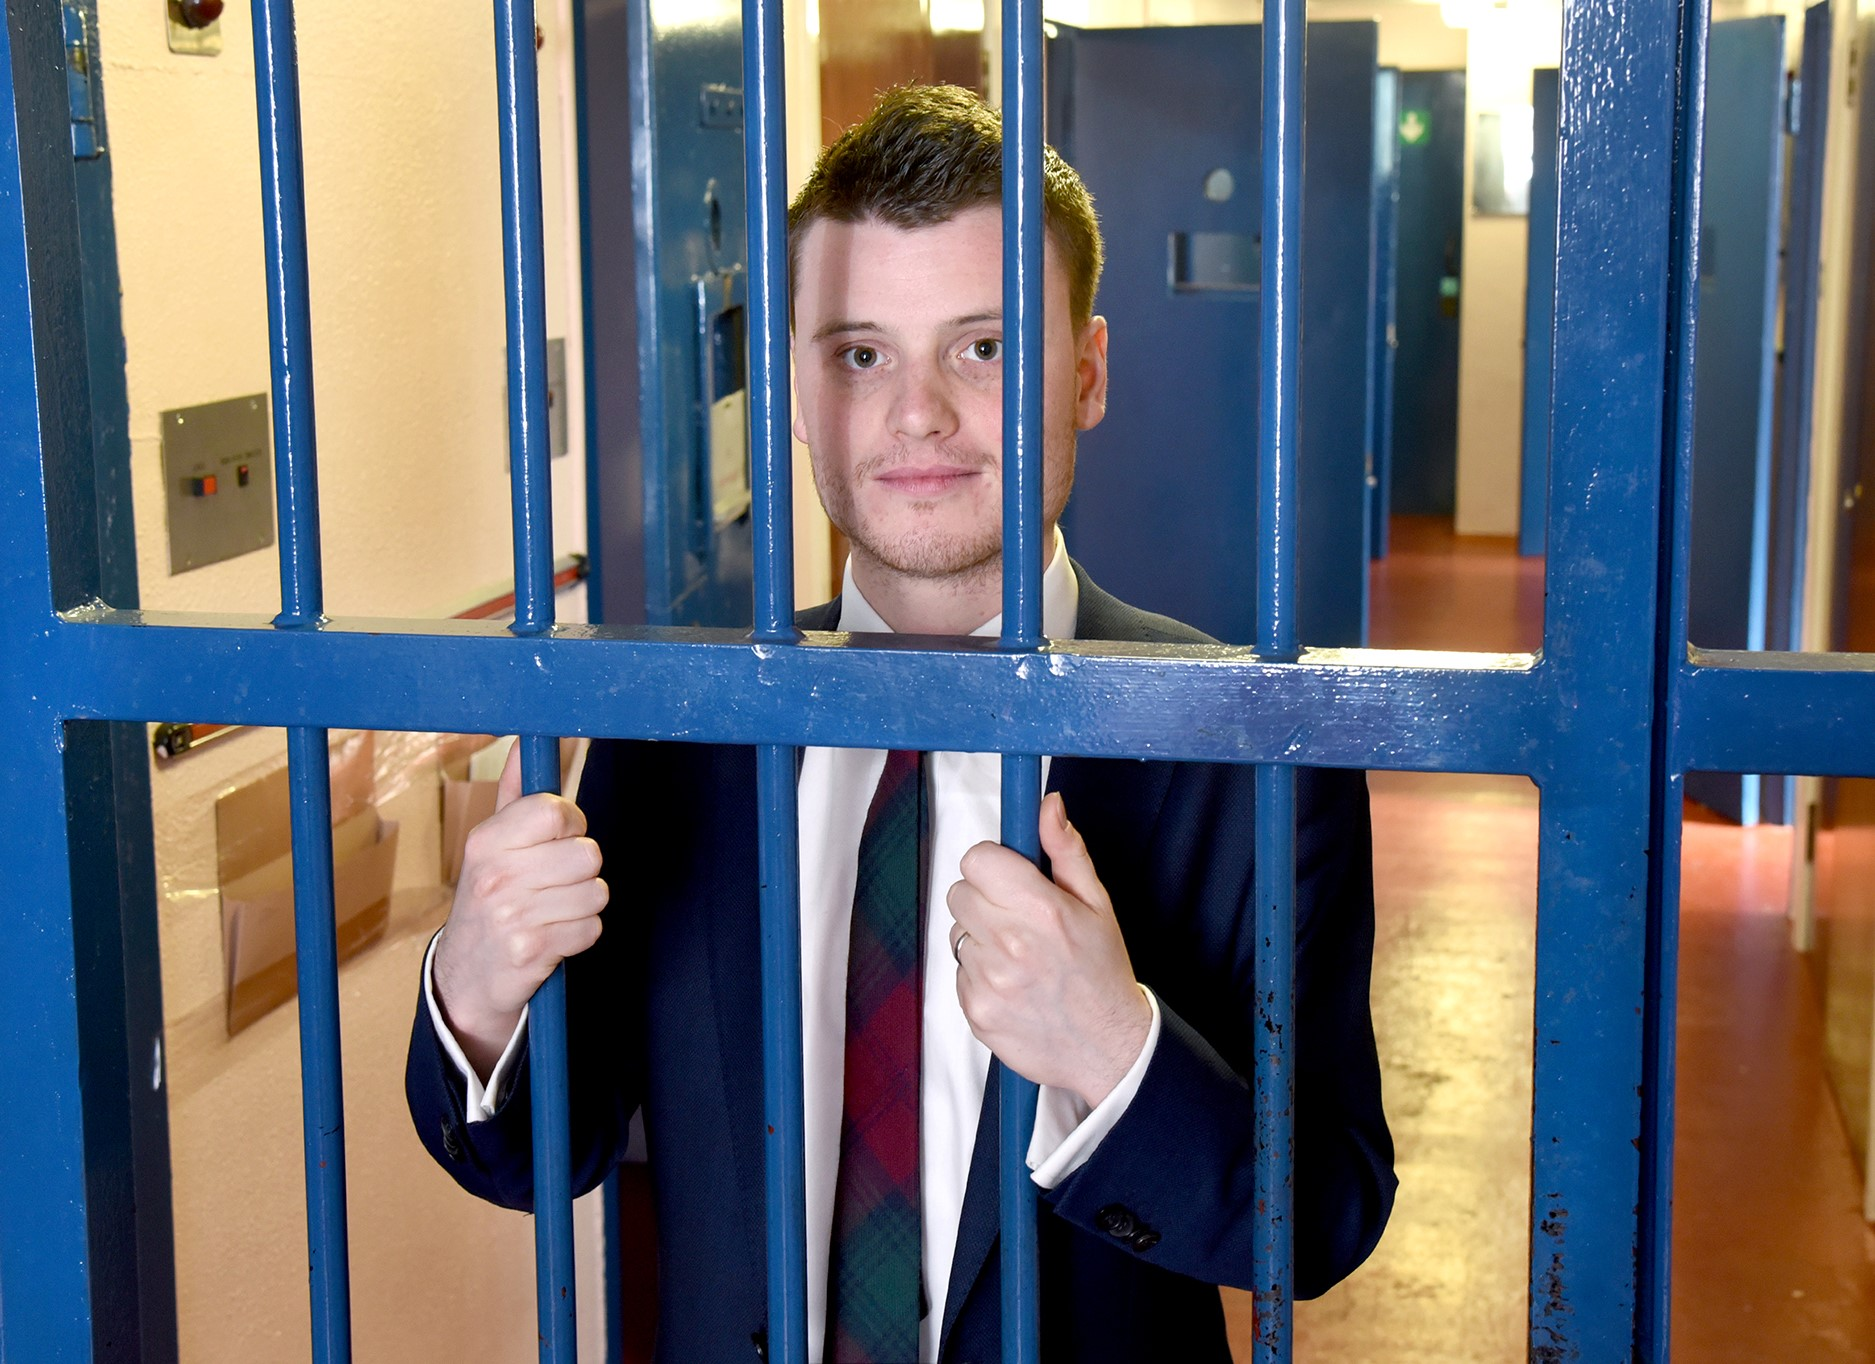 matt-wardrop-bars-002.jpg?center=0.33486238532110091,0